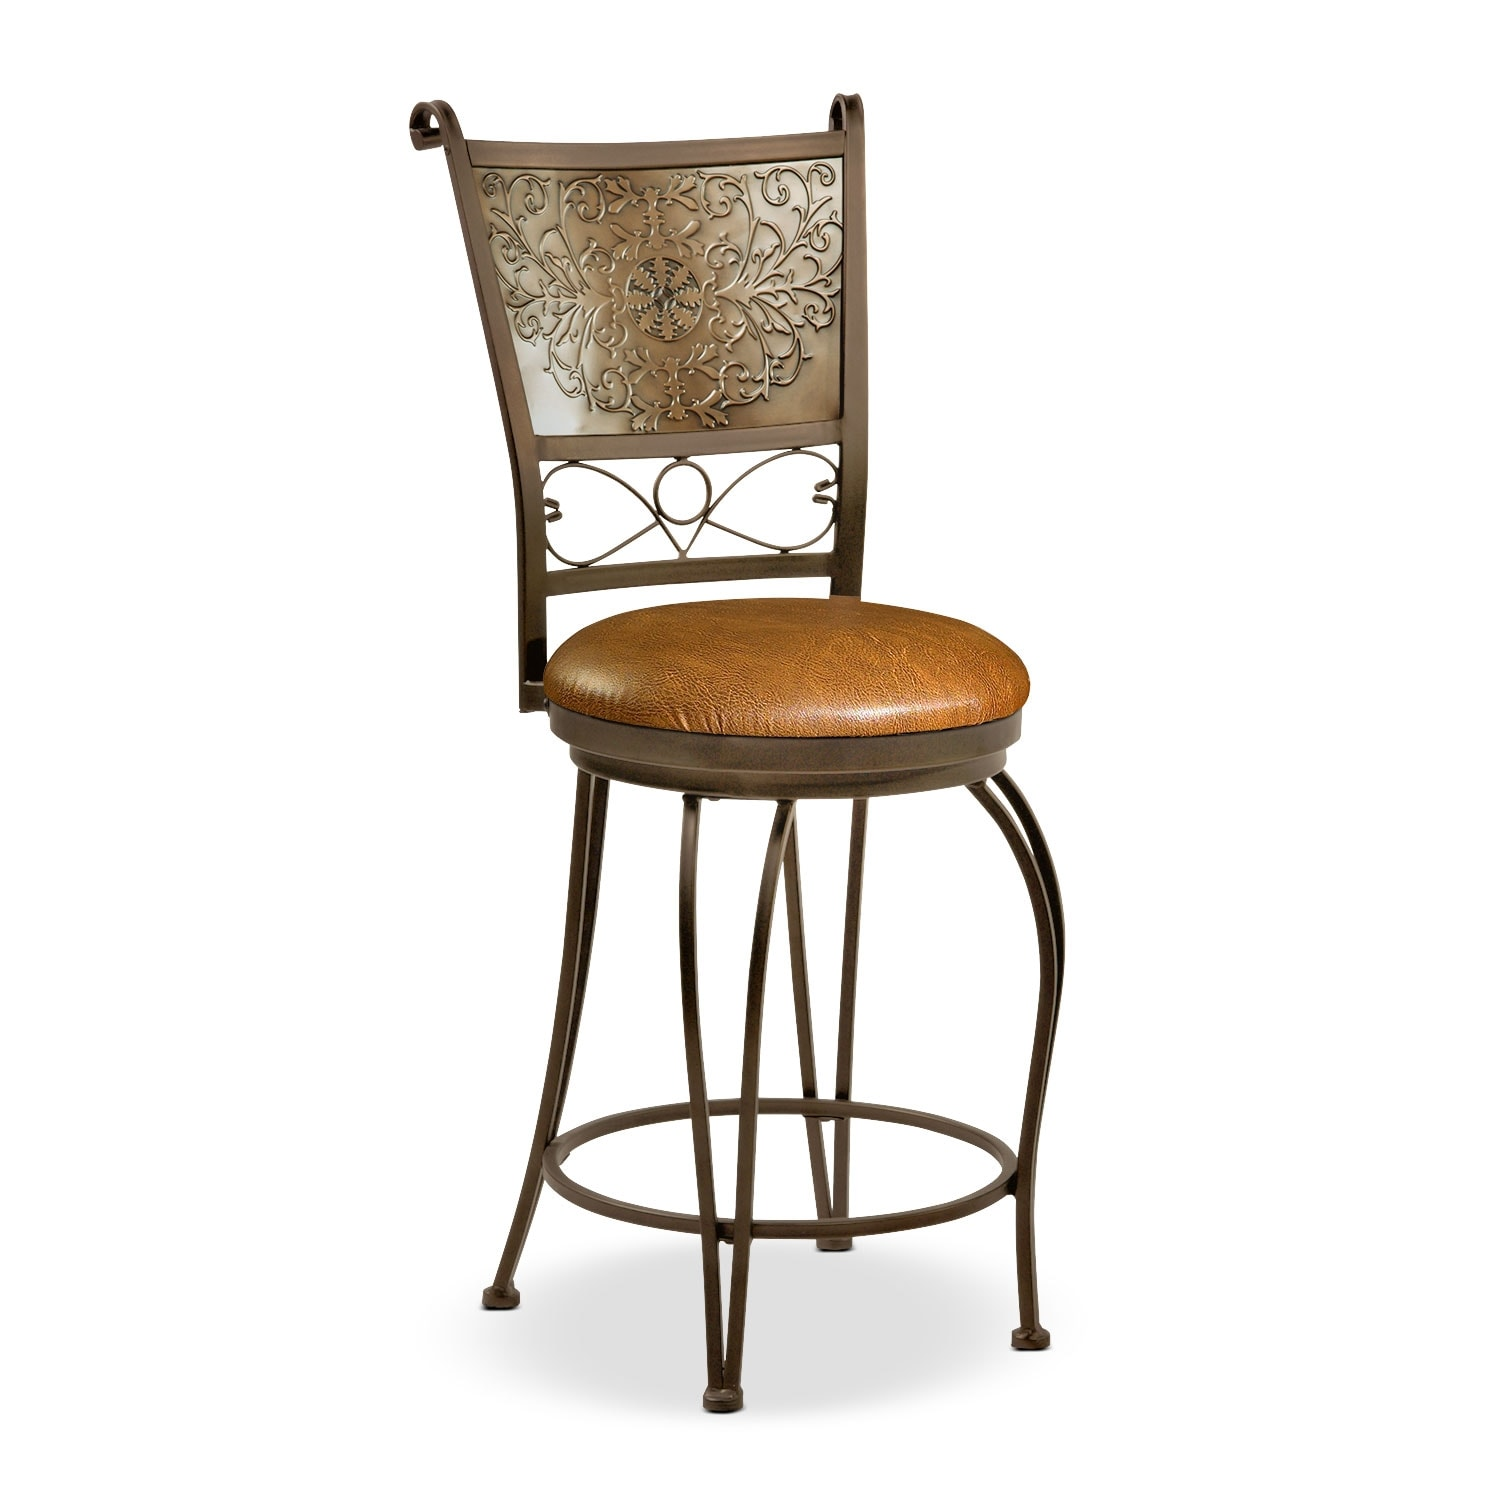 Accent and Occasional Furniture - Darby Counter-Height Stool - Brown